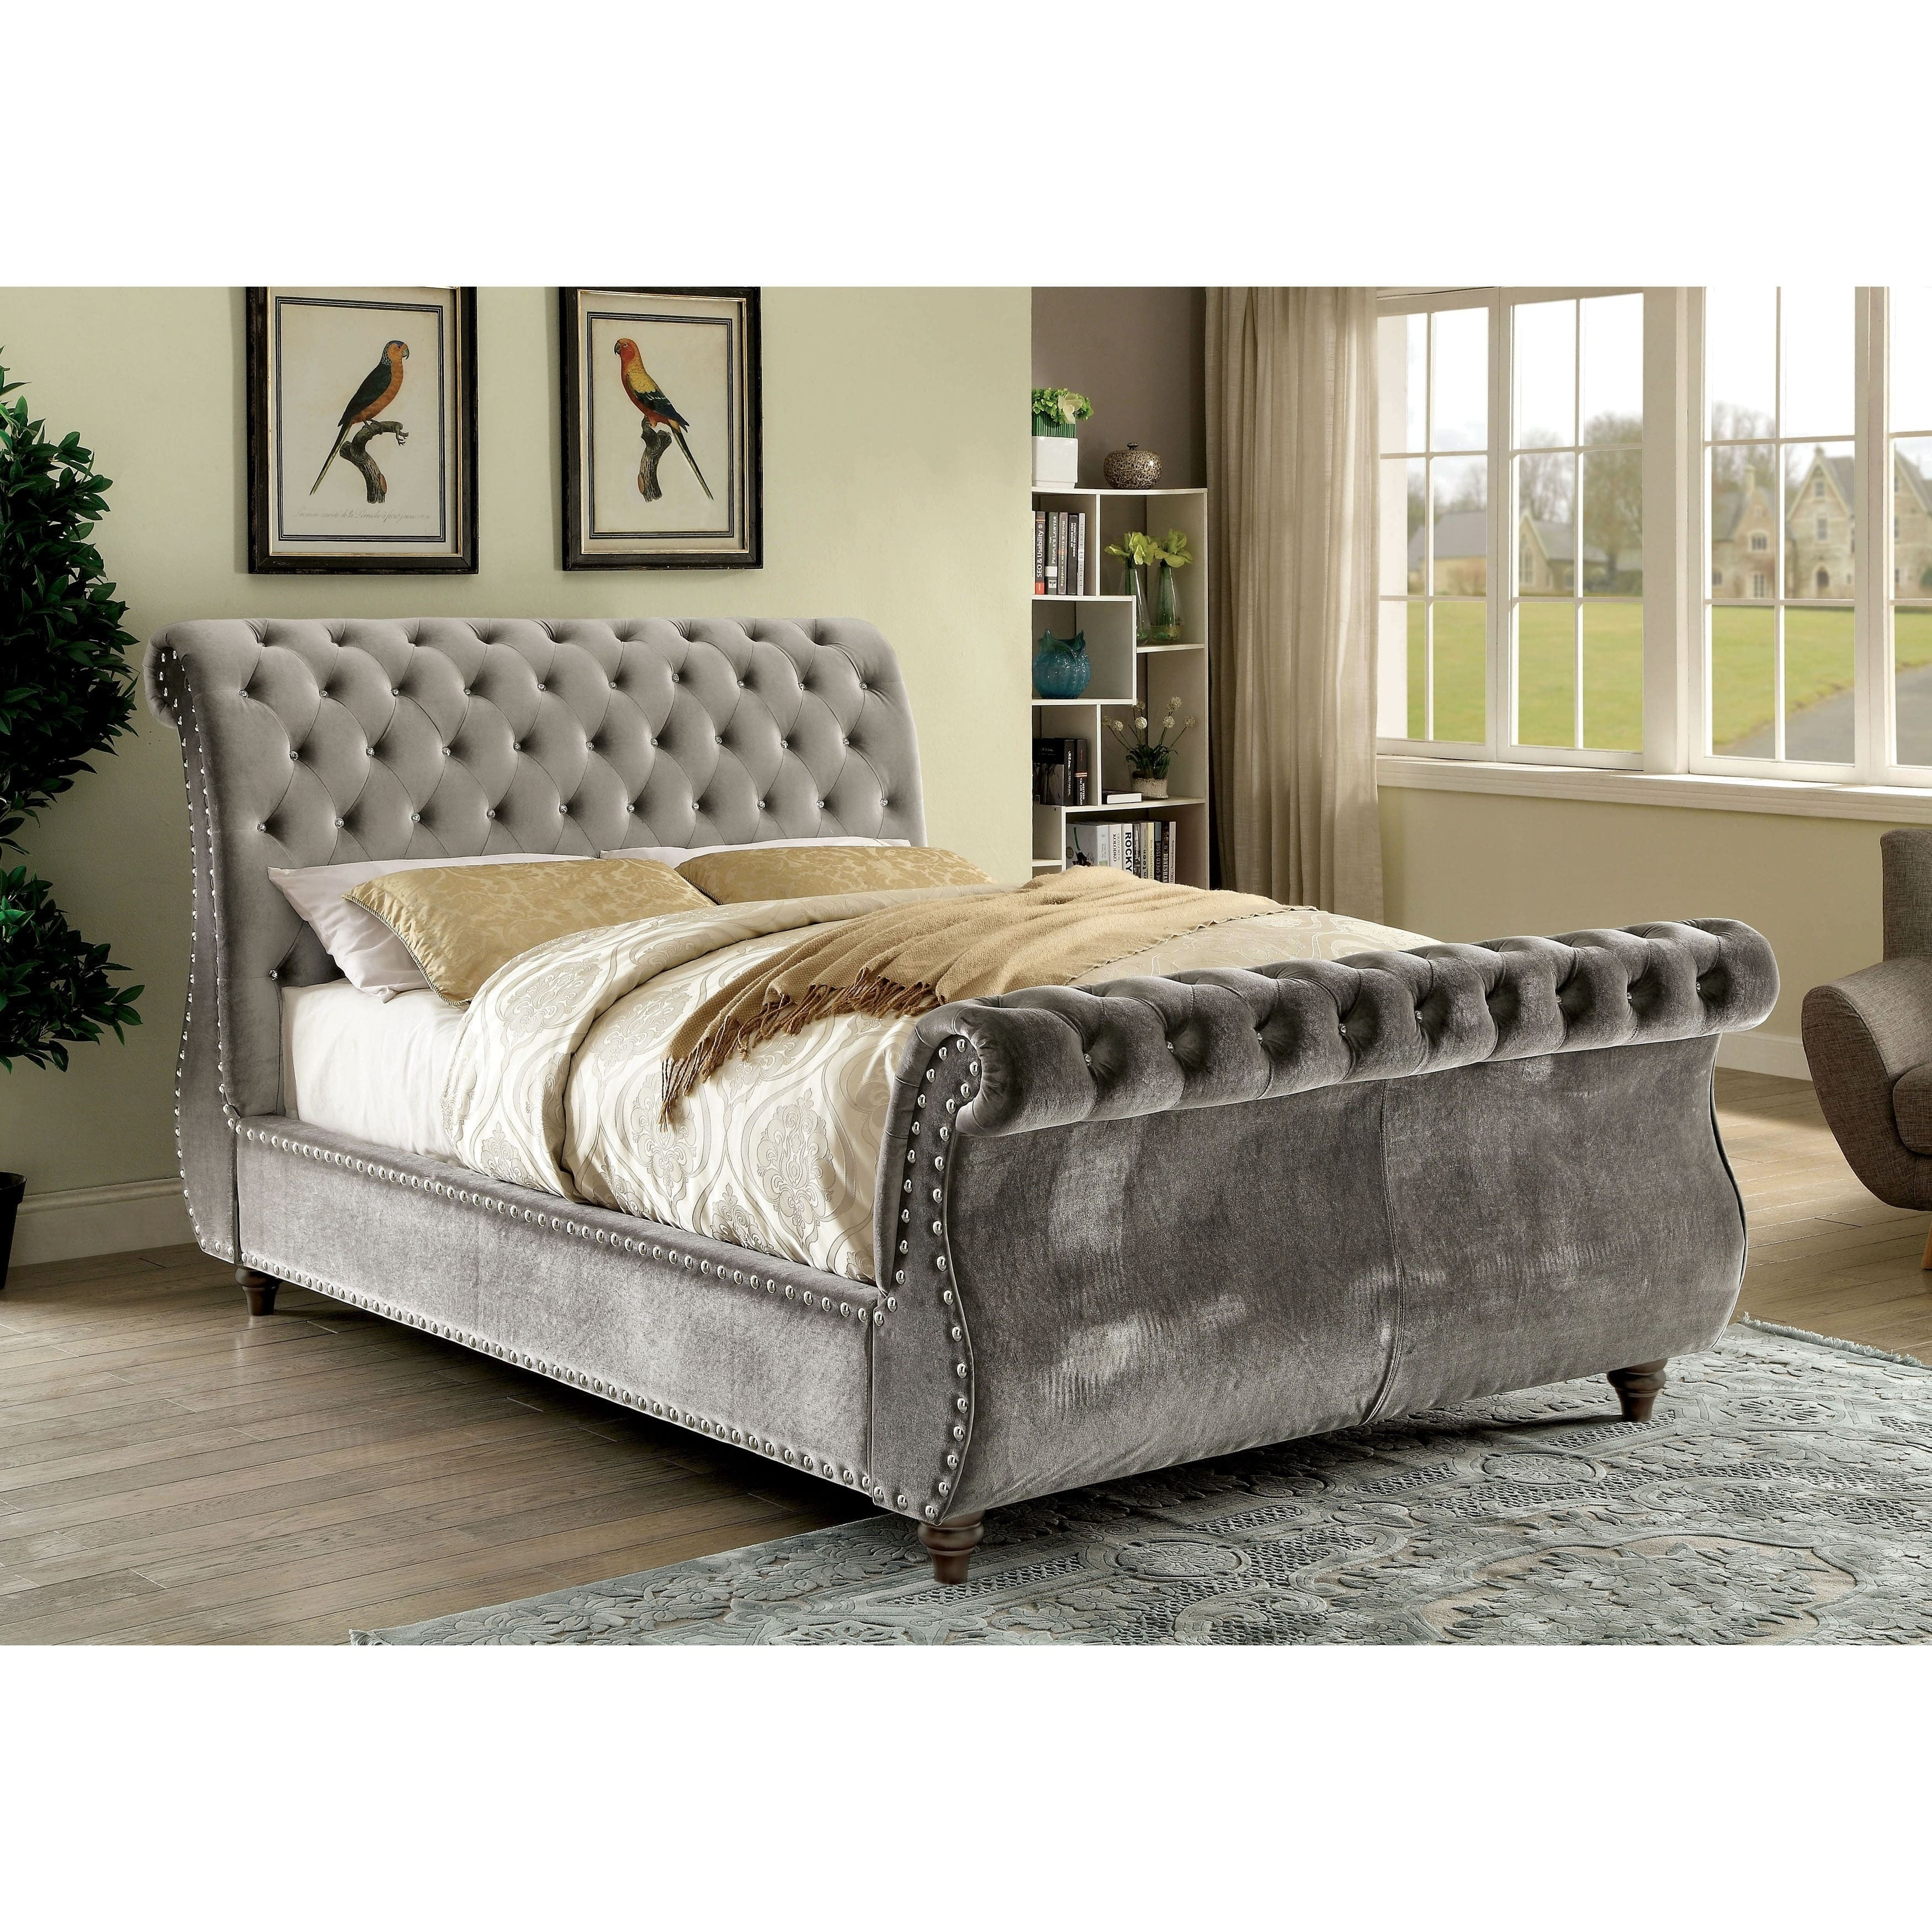 Shop Black Friday Deals On Furniture Of America Cown Contemporary Flannelette Tufted Sleigh Bed Overstock 12332405